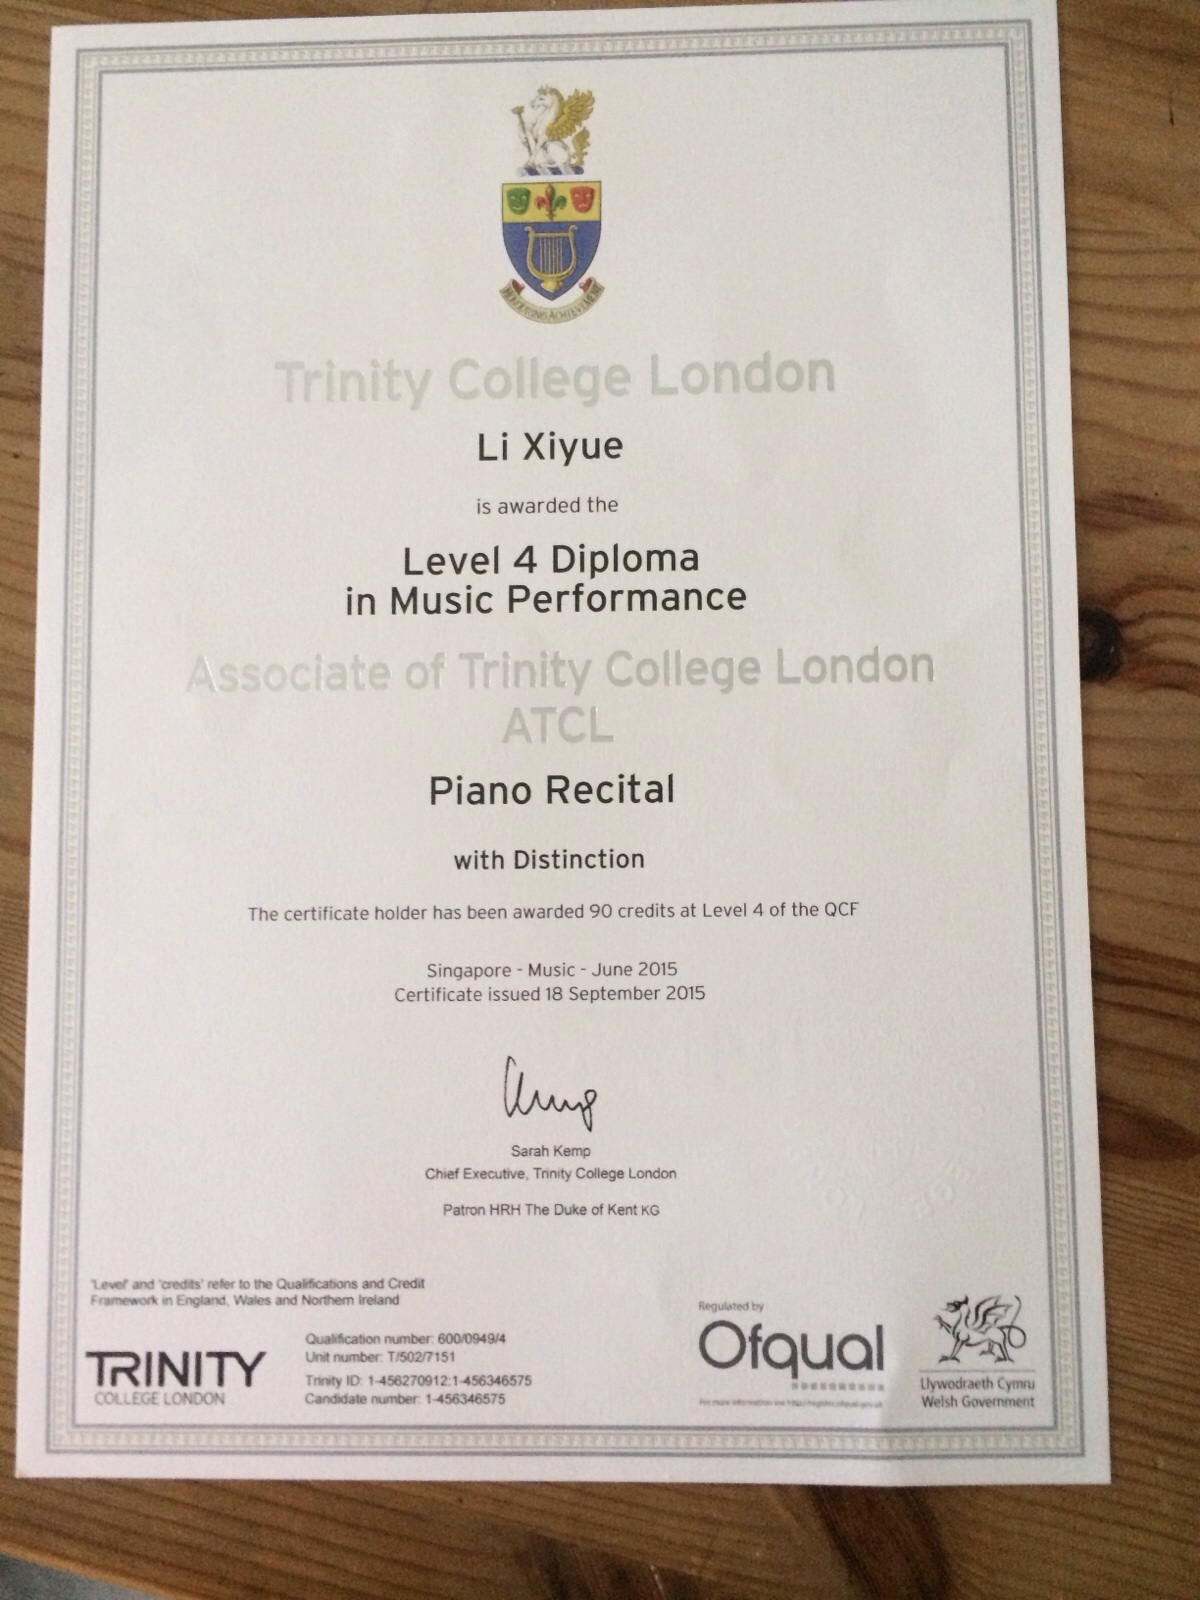 Bravo piano teacher mavis congratulations on your excellent result in trinity college london piano examination in 2015 well done keep it up xflitez Images